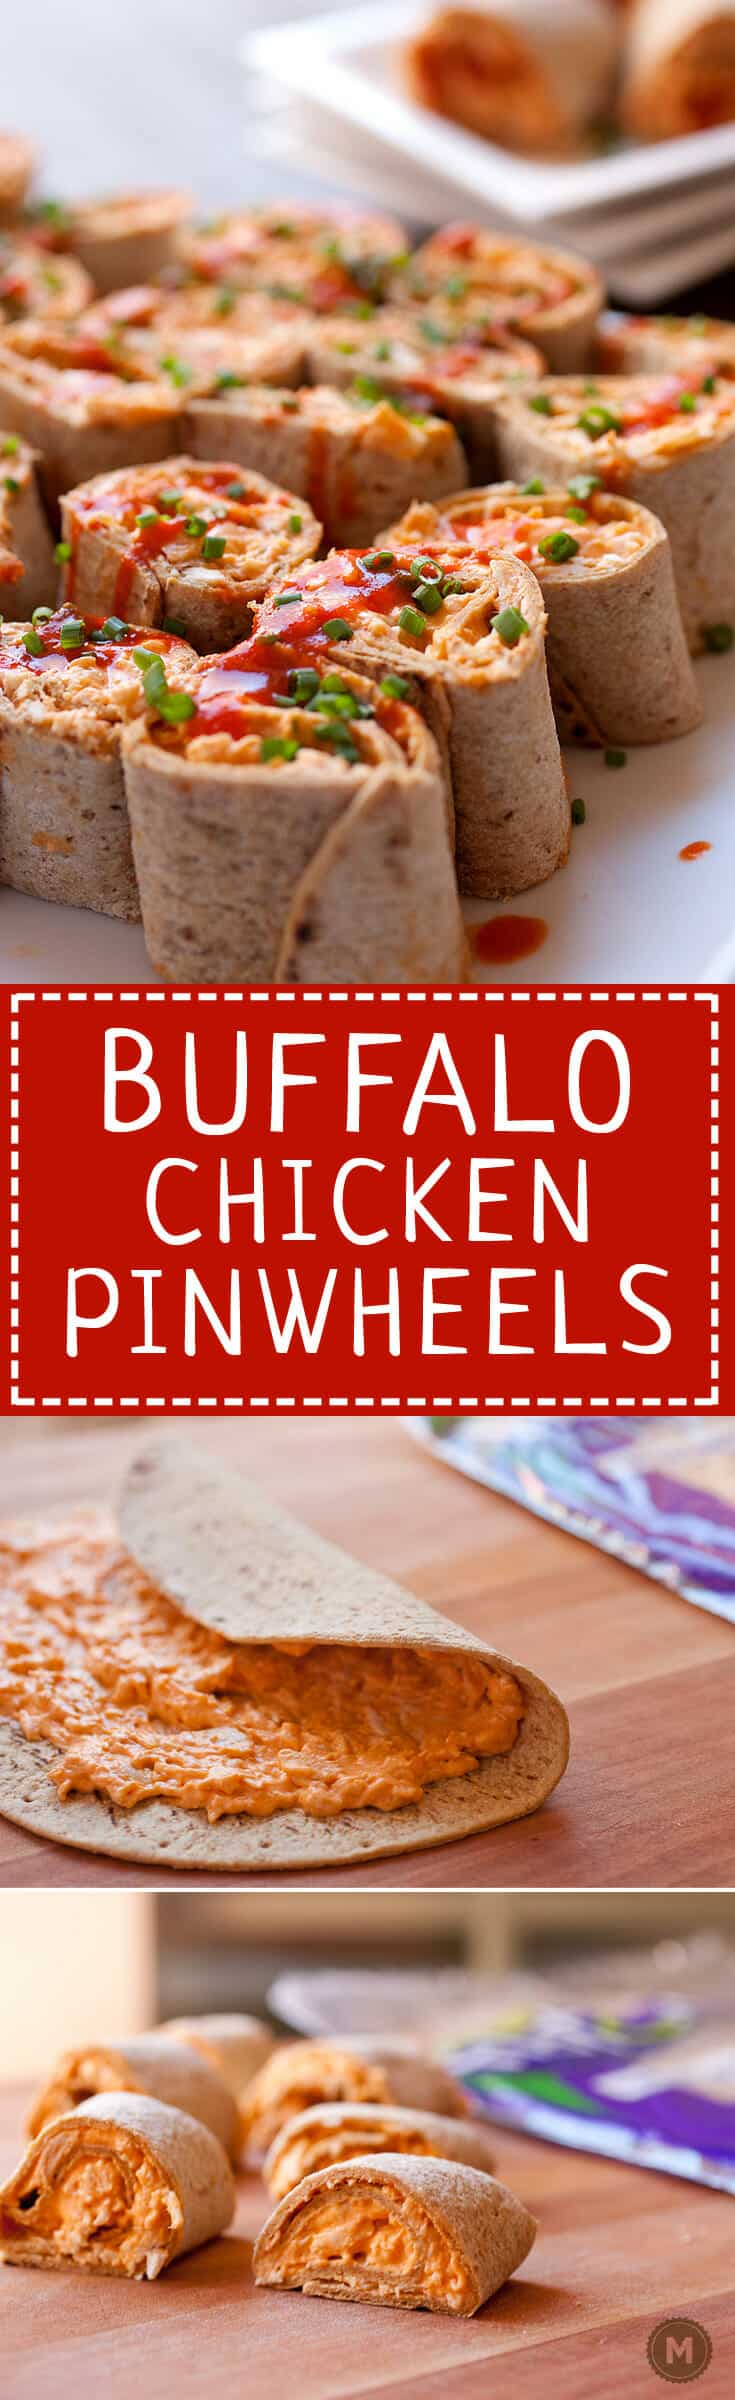 Buffalo Chicken Pinwheels: These are the perfect game day appetizer. Spicy and totally addictive, you need only five ingredients to make them happen and you can make them in advance! Use your favorite Flatout Flatbread to roll 'em up! #spons | macheesmo.com